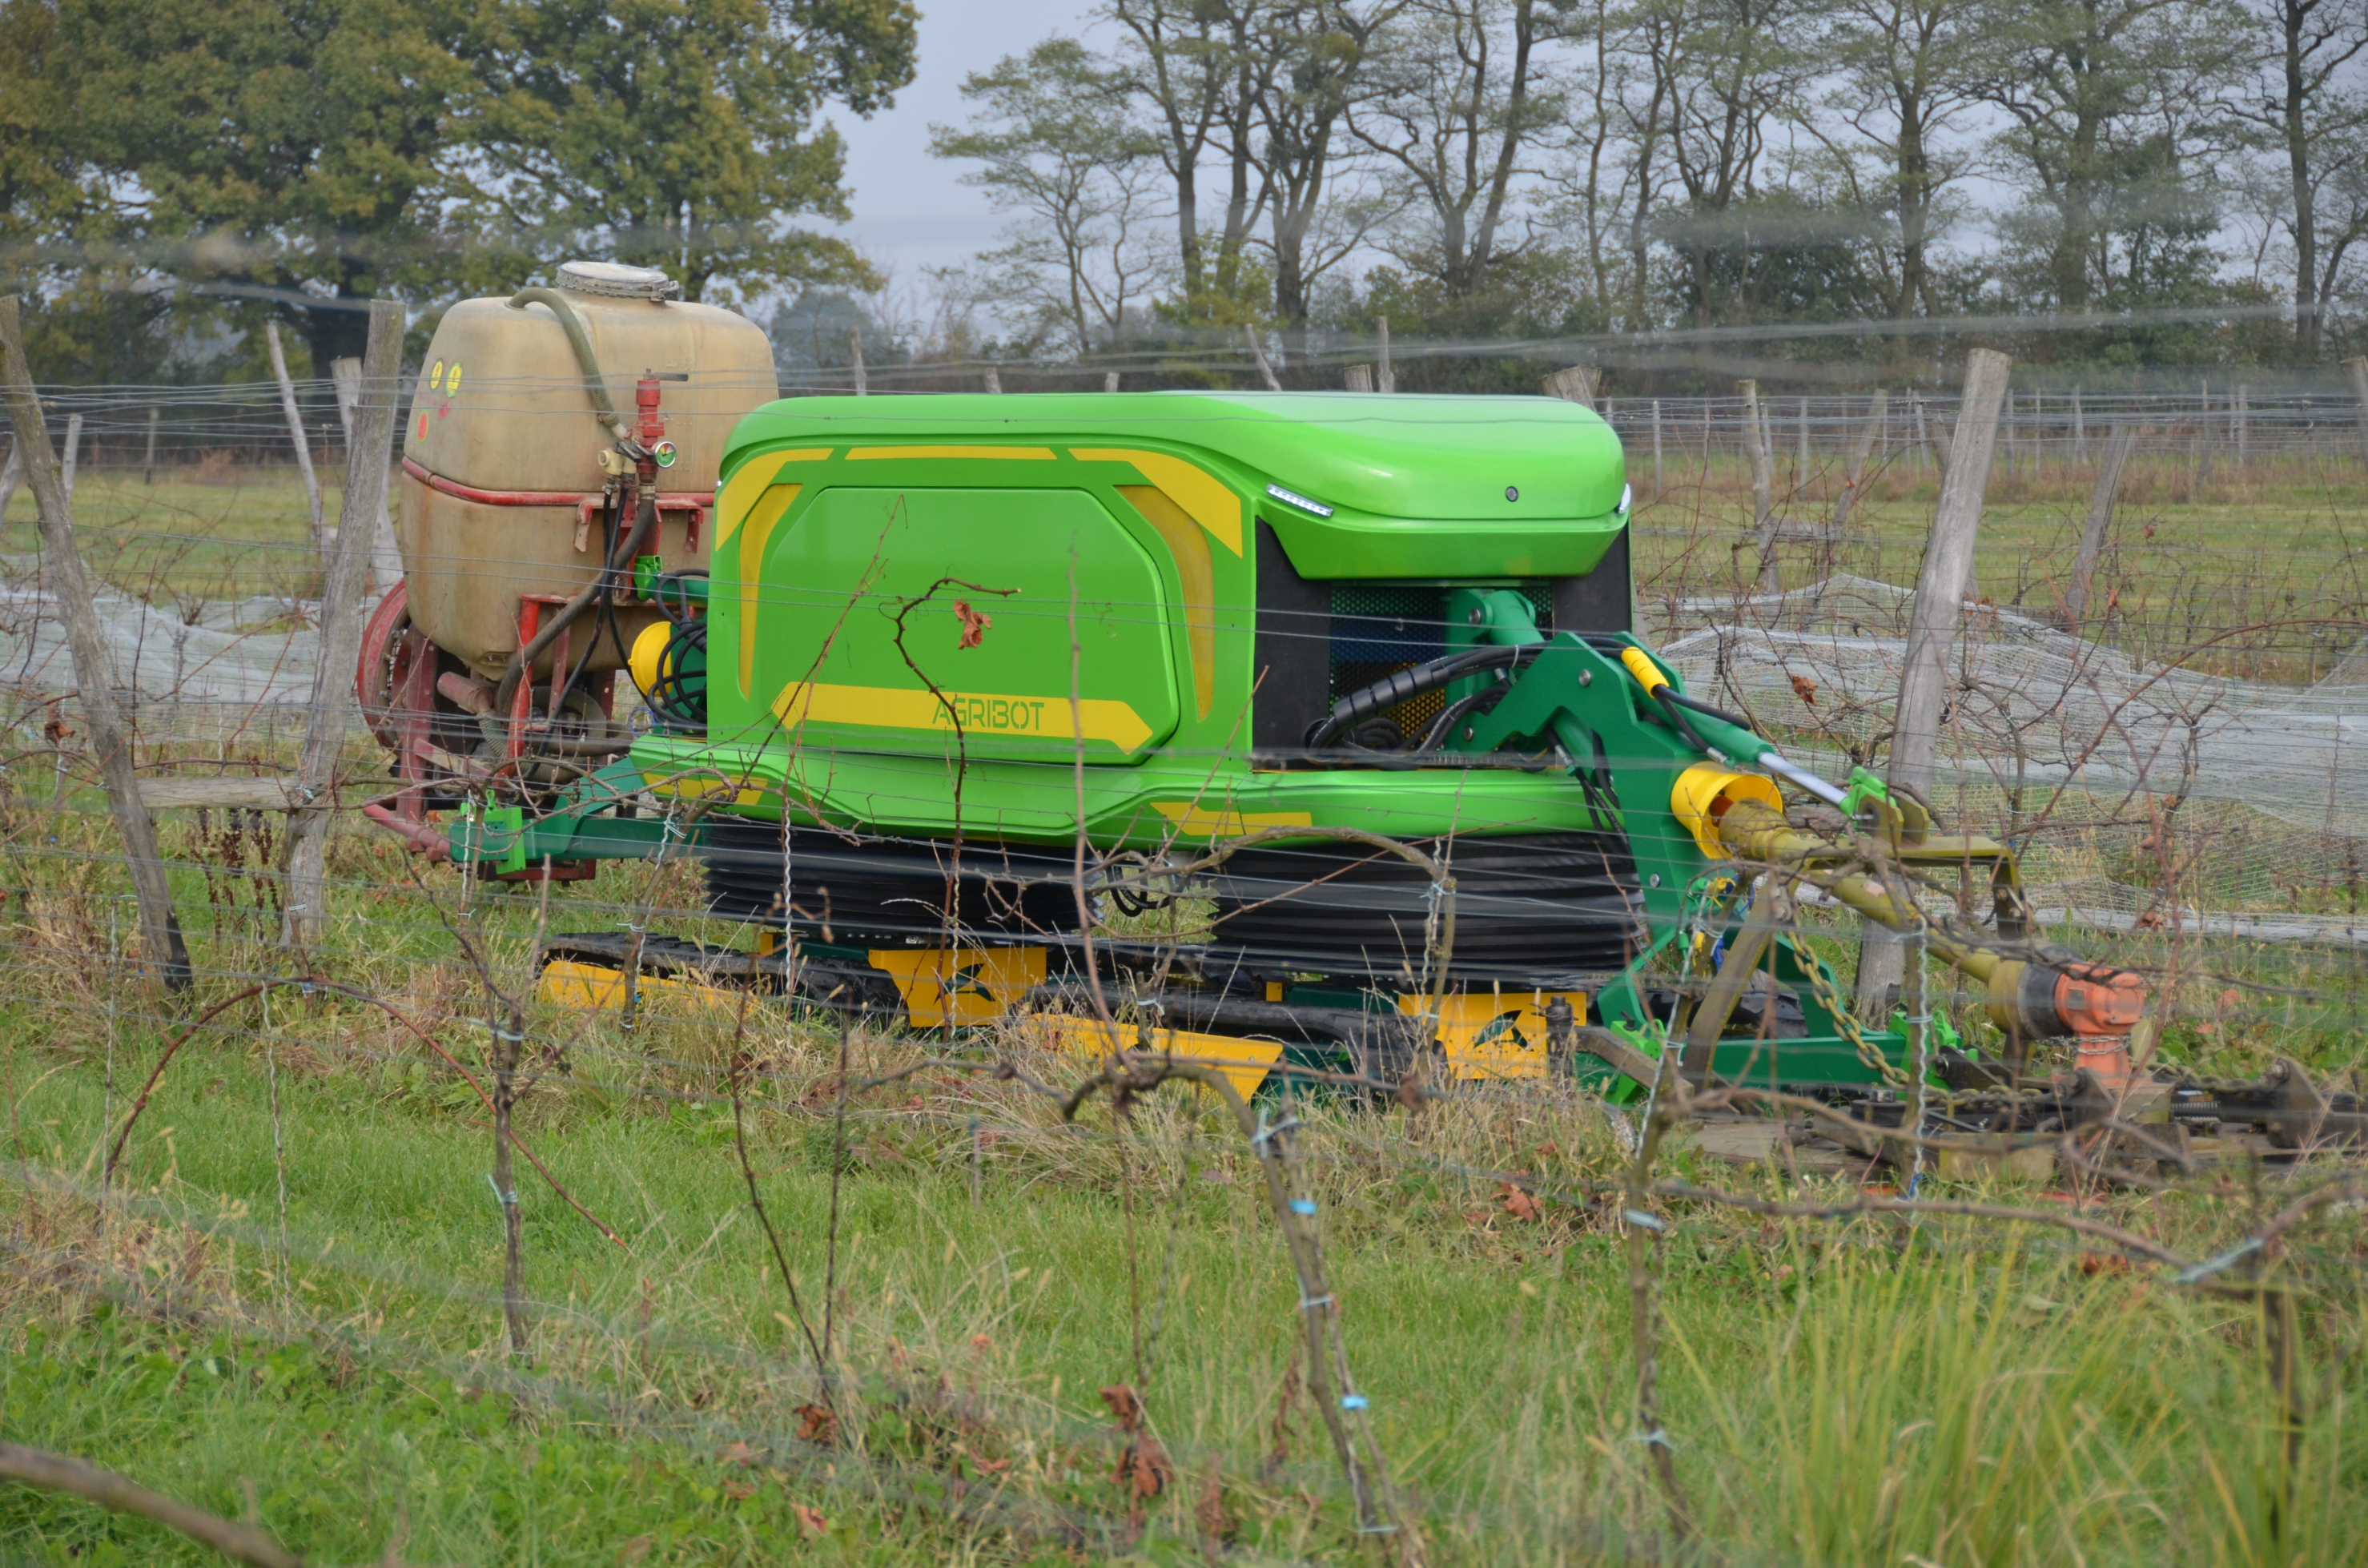 Agribot is a robot, that autonomously does all the work in orchards and plantations. It is controlled via the operator panel accesible through a web browser. Here, it can be seen during one of the first field tests in a vineyard, where ist capabilities to operate two machines at once was tested. (Image credit: Agribot sp. z o.o)